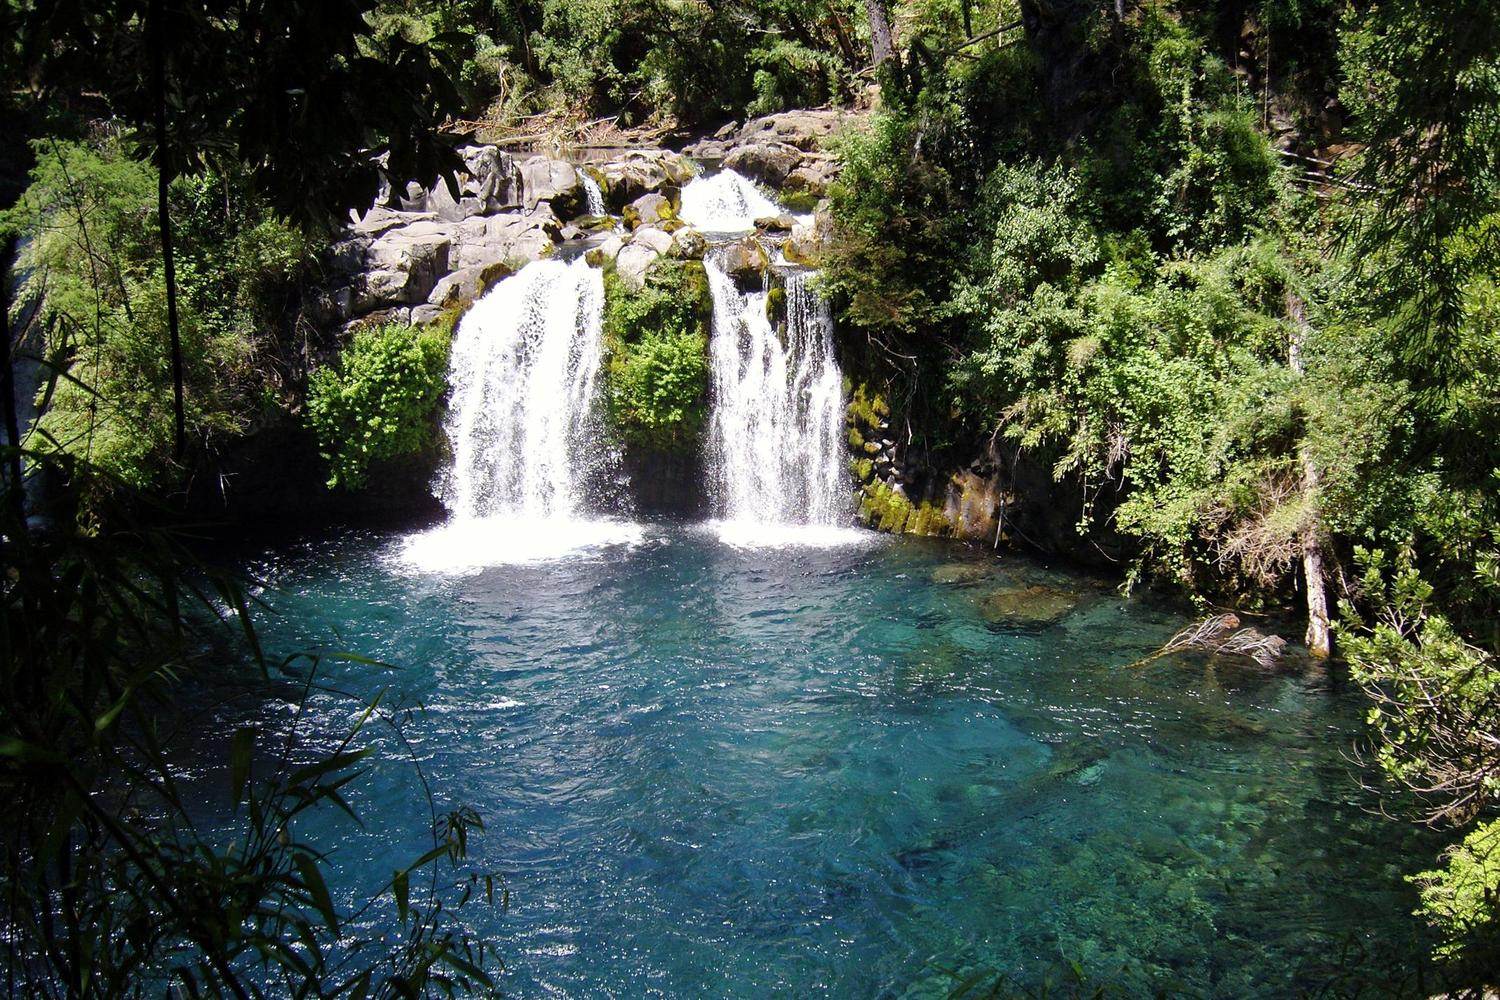 The Ojos de Caburgua pools and waterfalls near Pucón